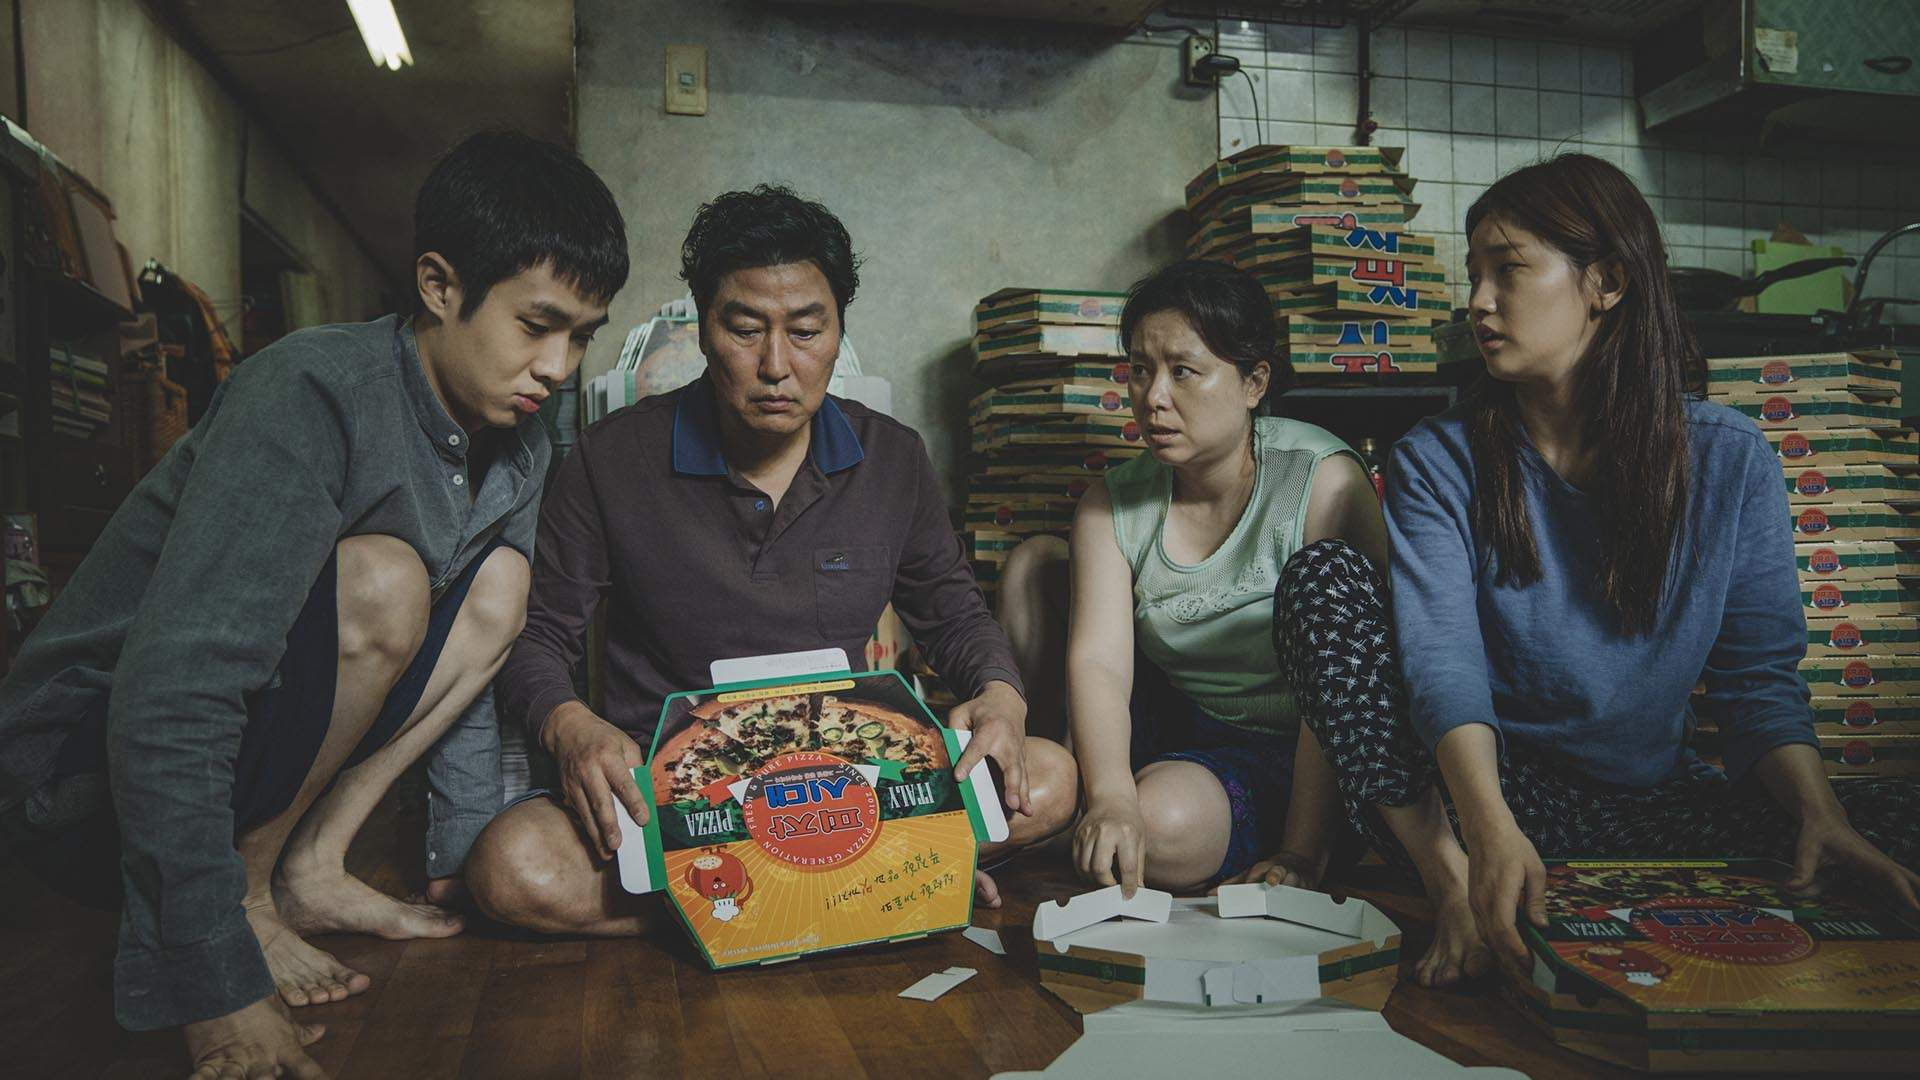 Bong Joon-ho's 'Parasite' Has Won the Palme d'Or at This Year's Cannes Film Festival